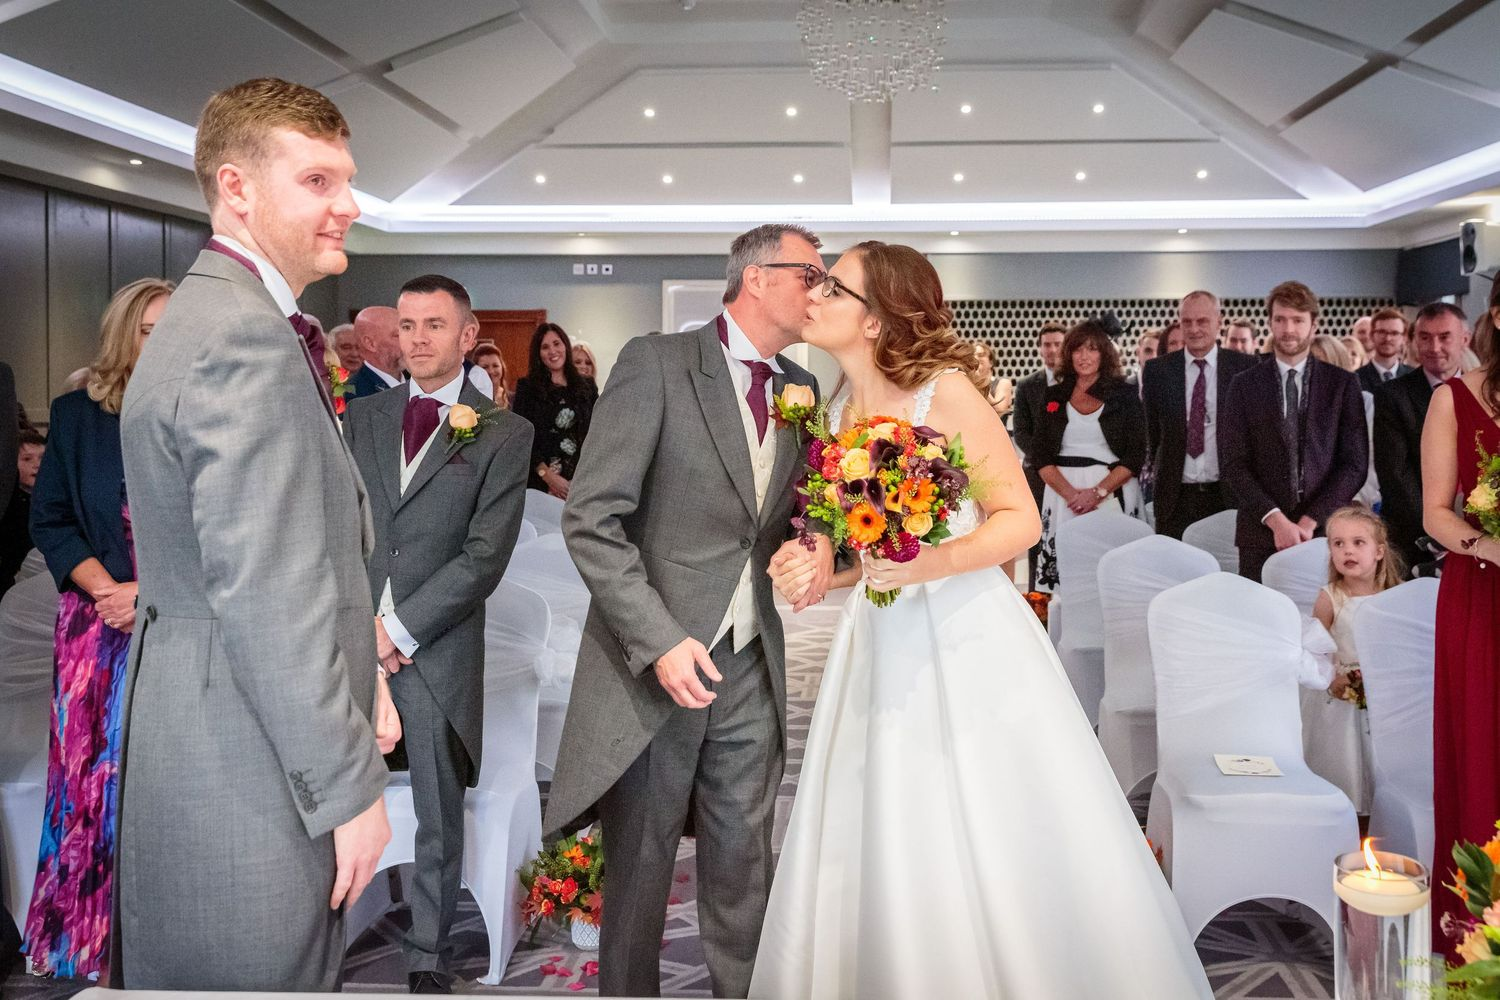 bride gets a kiss on the cheek from her father as they reach the end of the aisle